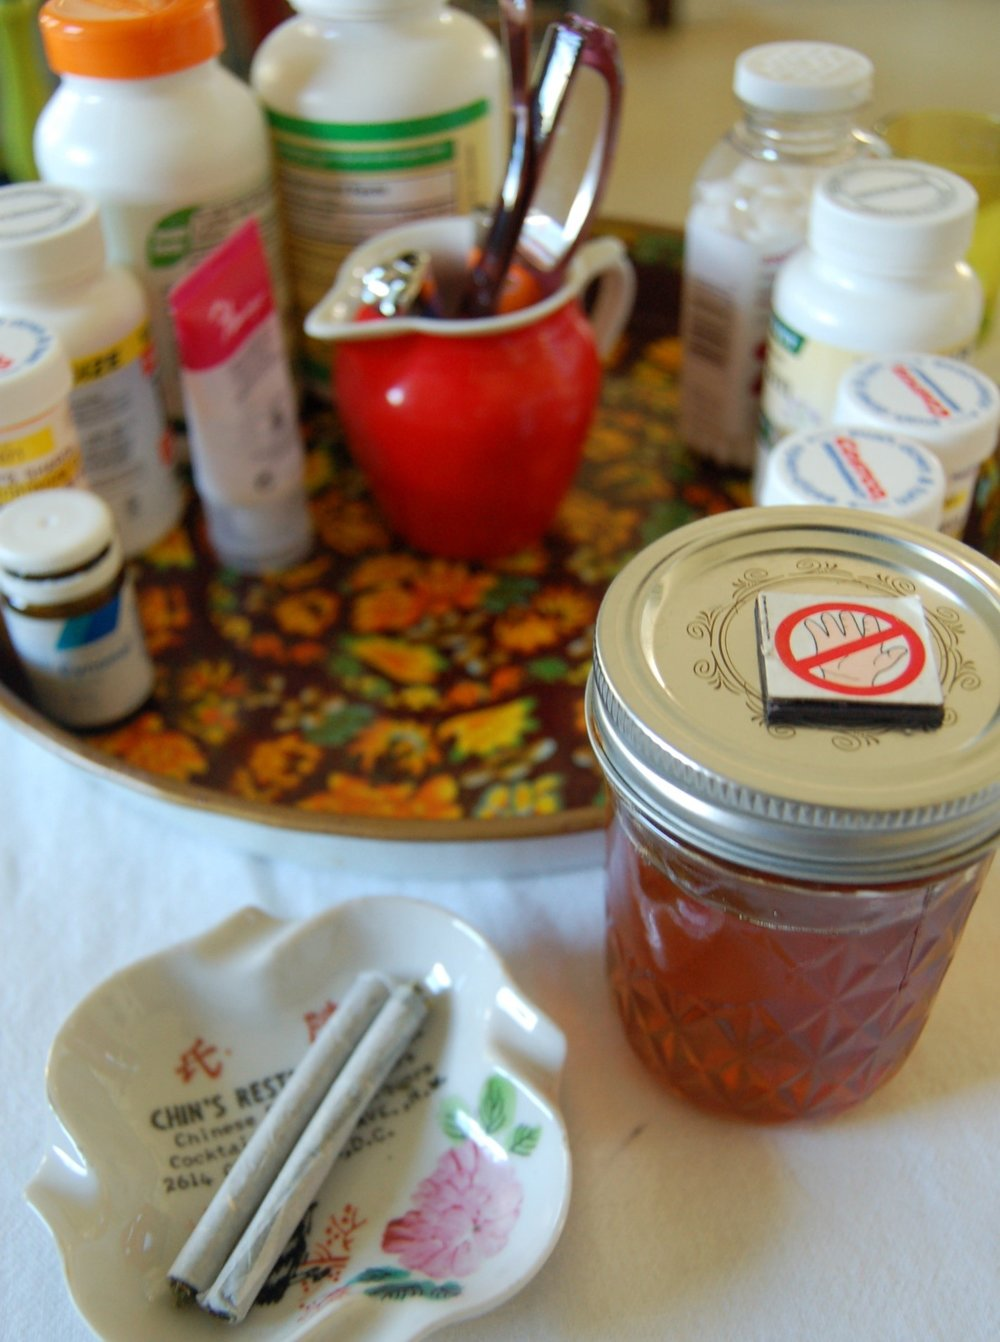 sharon's Past Prescription medication and supplement tray became her smoking and cannabis medication tray; now filled with tincture, salve, and smoking tools. Photo: Sharon Letts